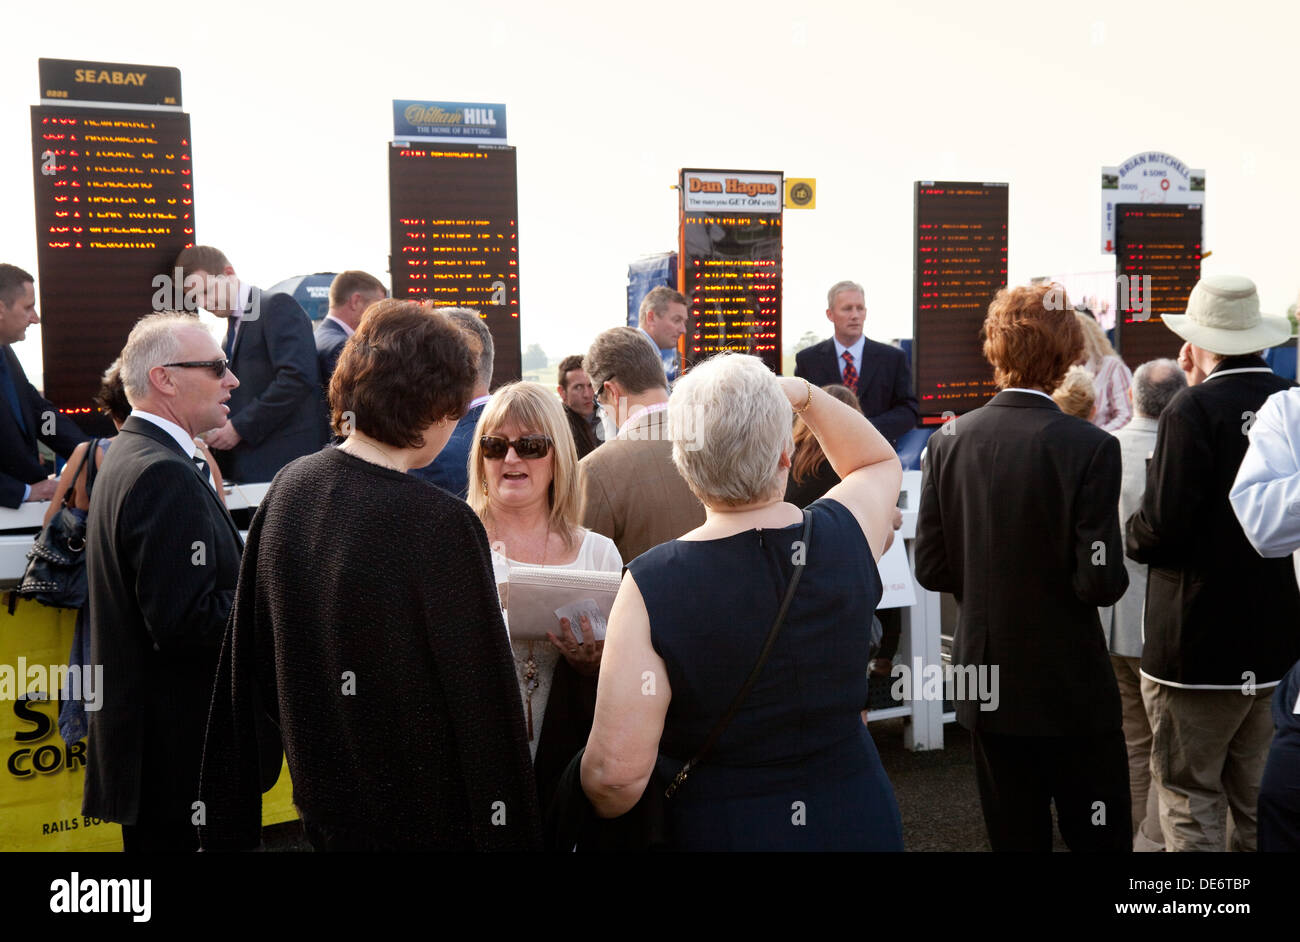 People betting on the horses at Newmarket Races, the July racecourse, Newmarket Suffolk UK - Stock Image